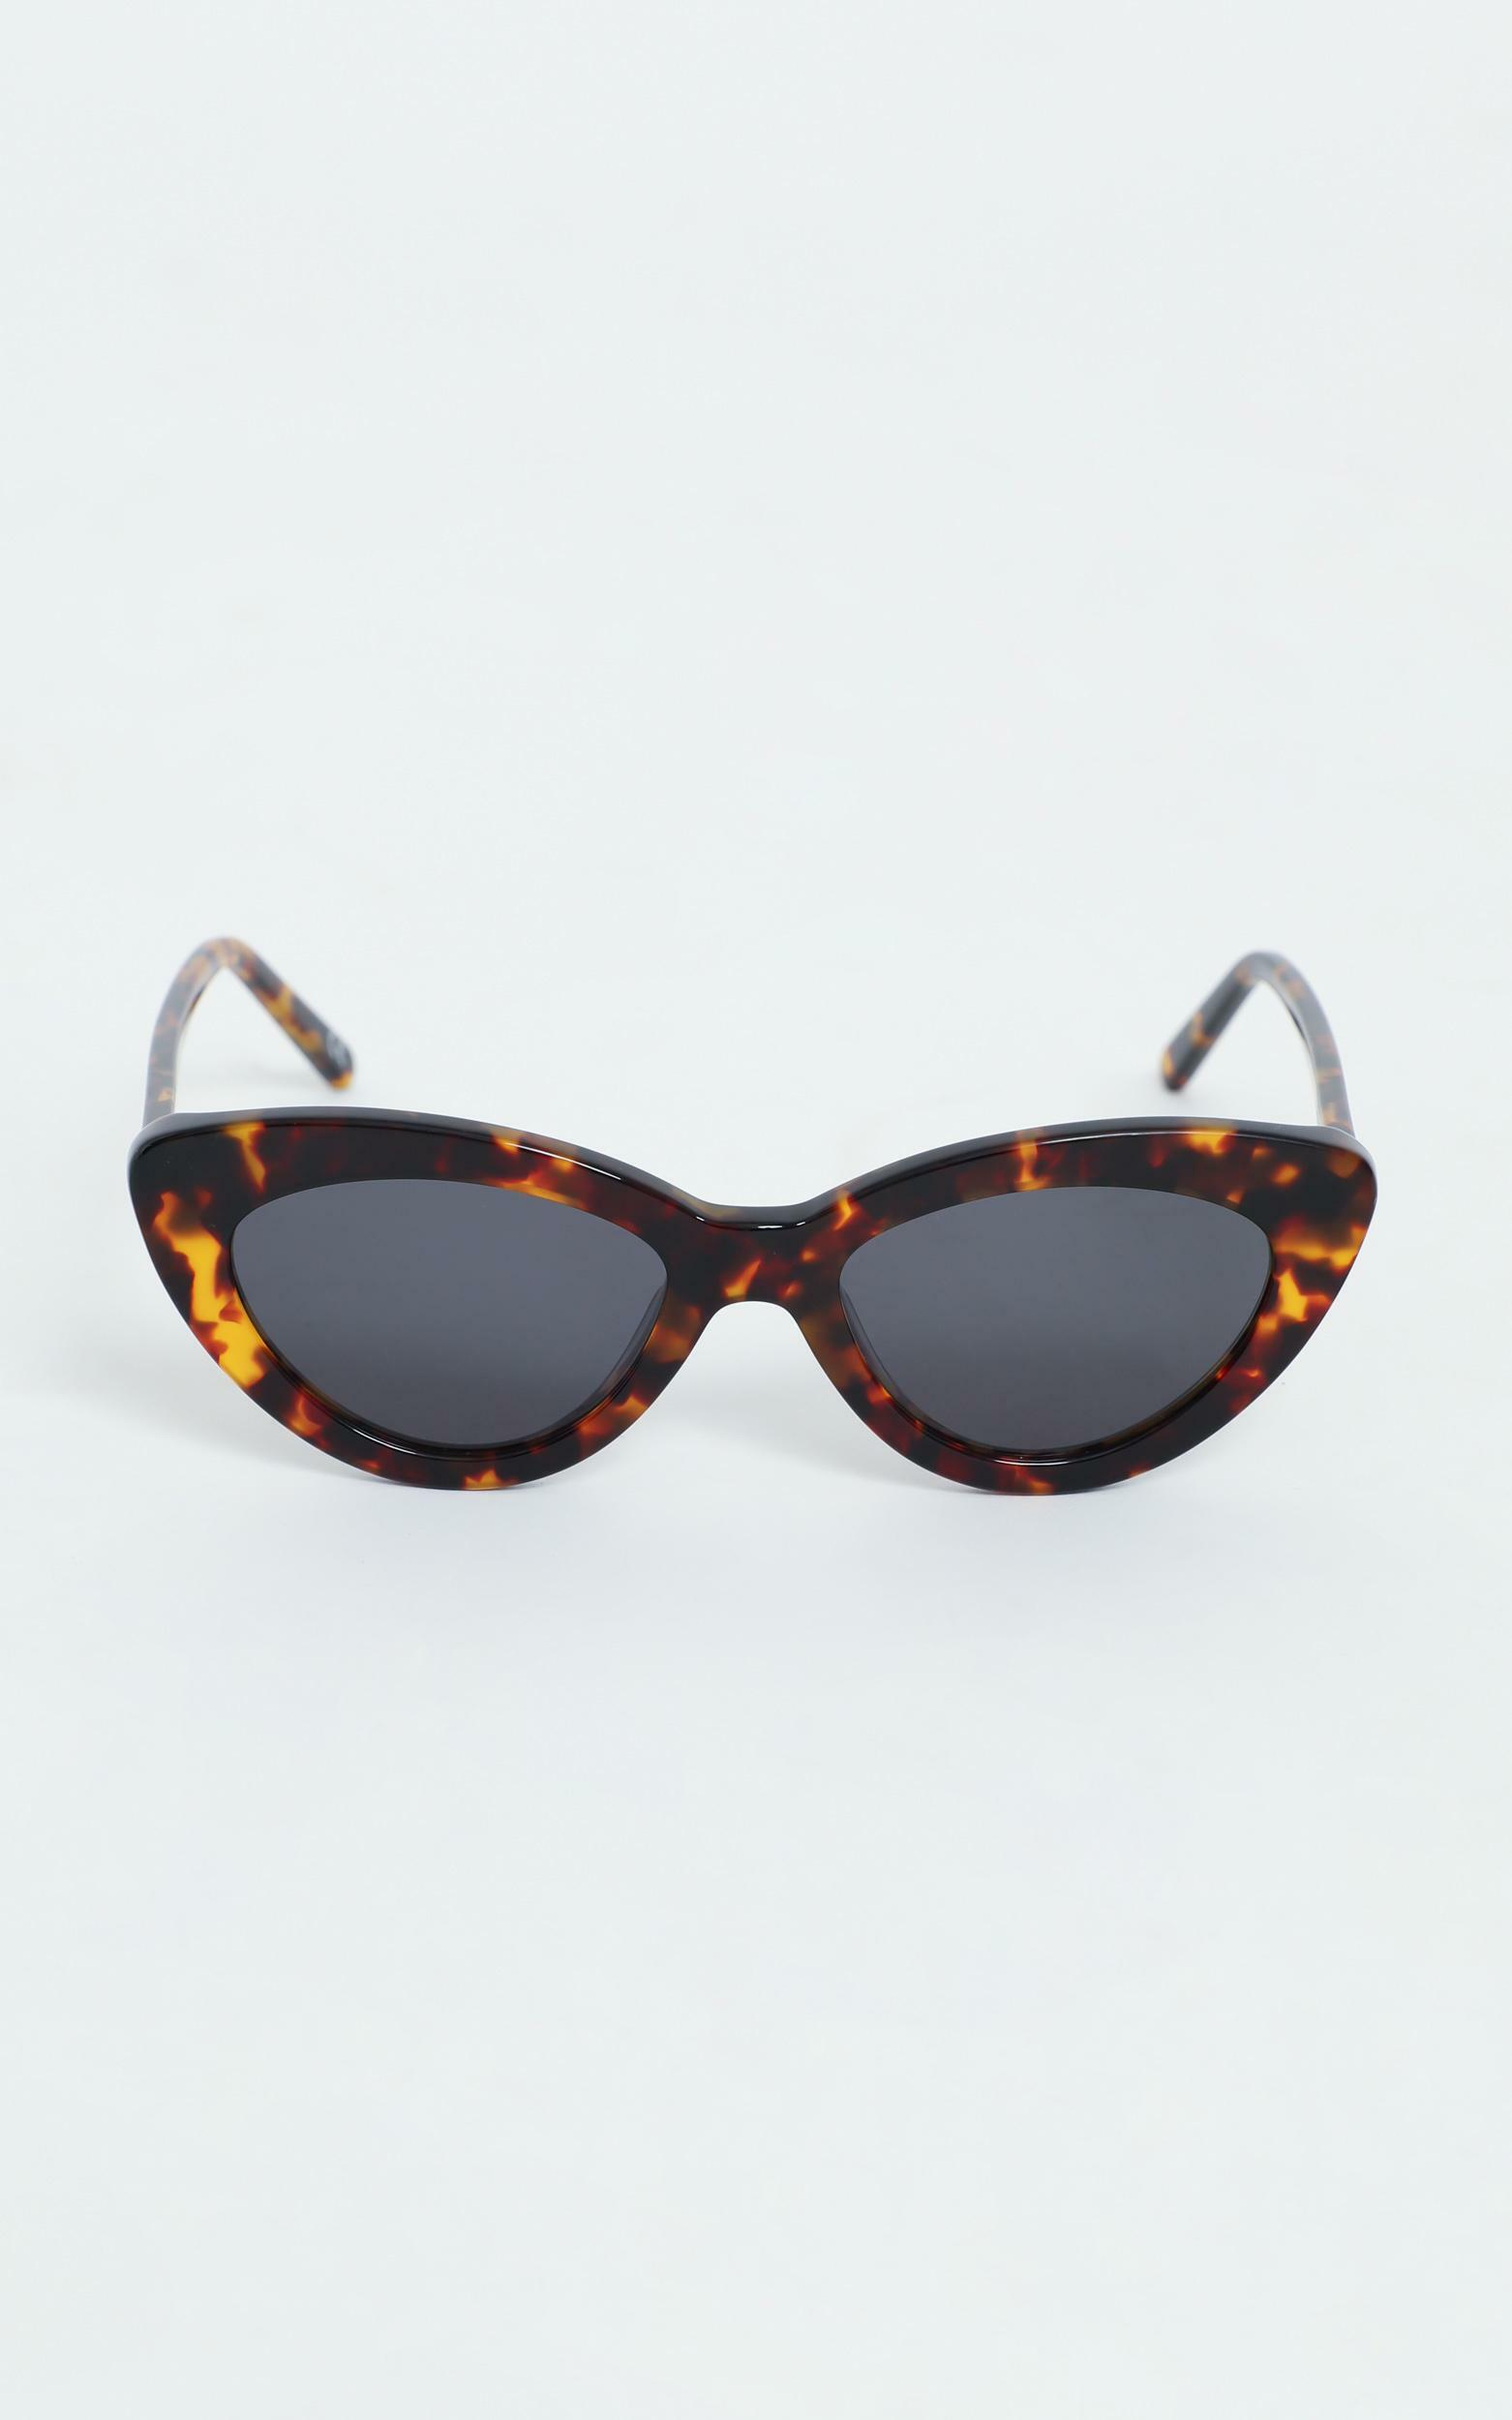 Luv Lou - The Harley Sunglasses in Tort, NEU4, hi-res image number null